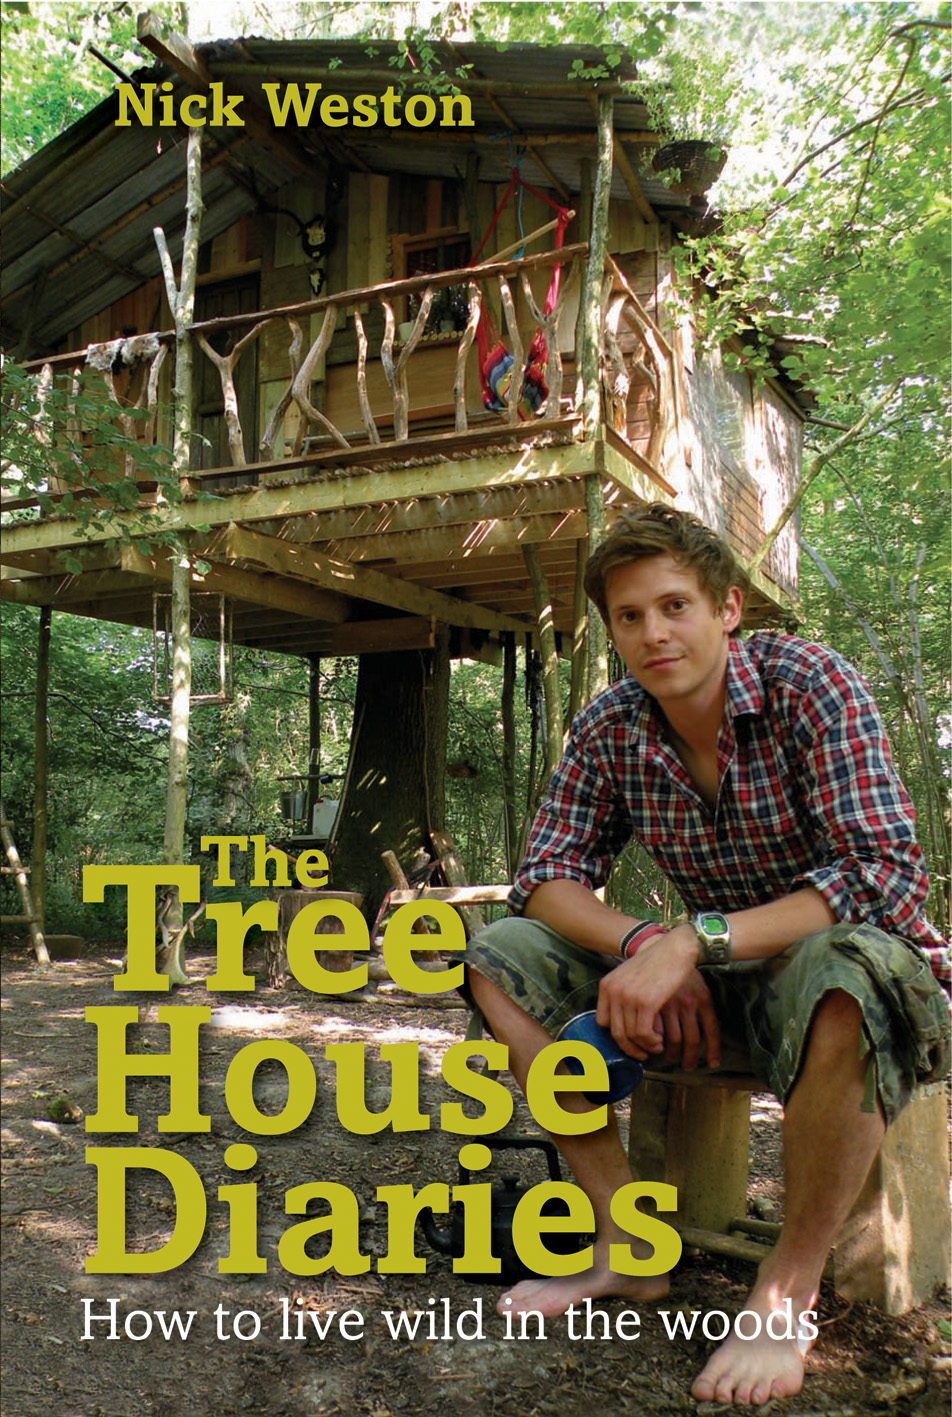 The Tree House Diaries